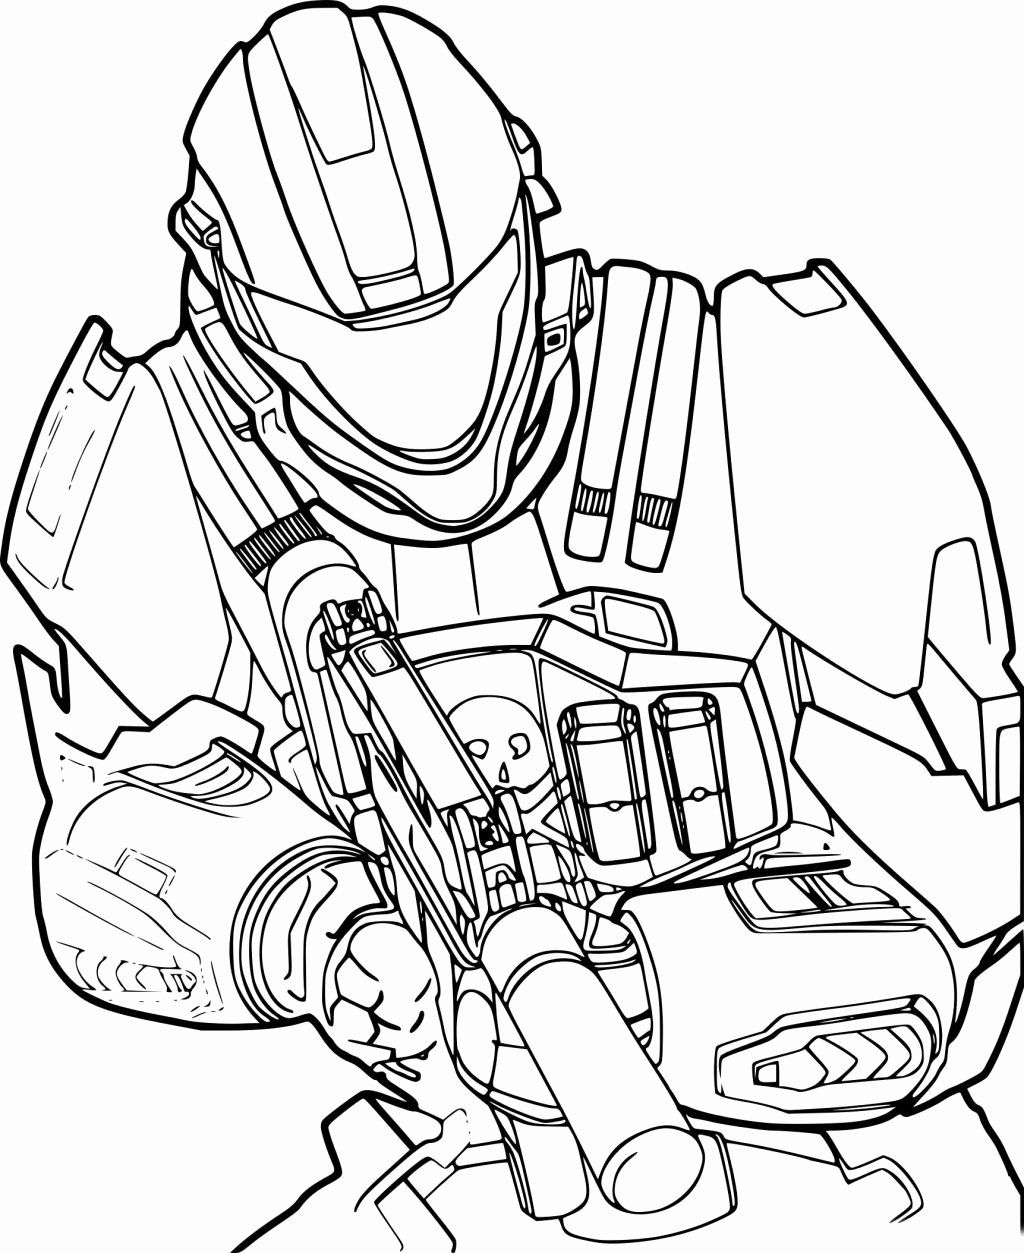 Animal Rescue Coloring Book Beautiful Coloring Pages Paw Patrol Printable Coloring Pages In 2020 Coloring Books Coloring Pages To Print Halo Drawings